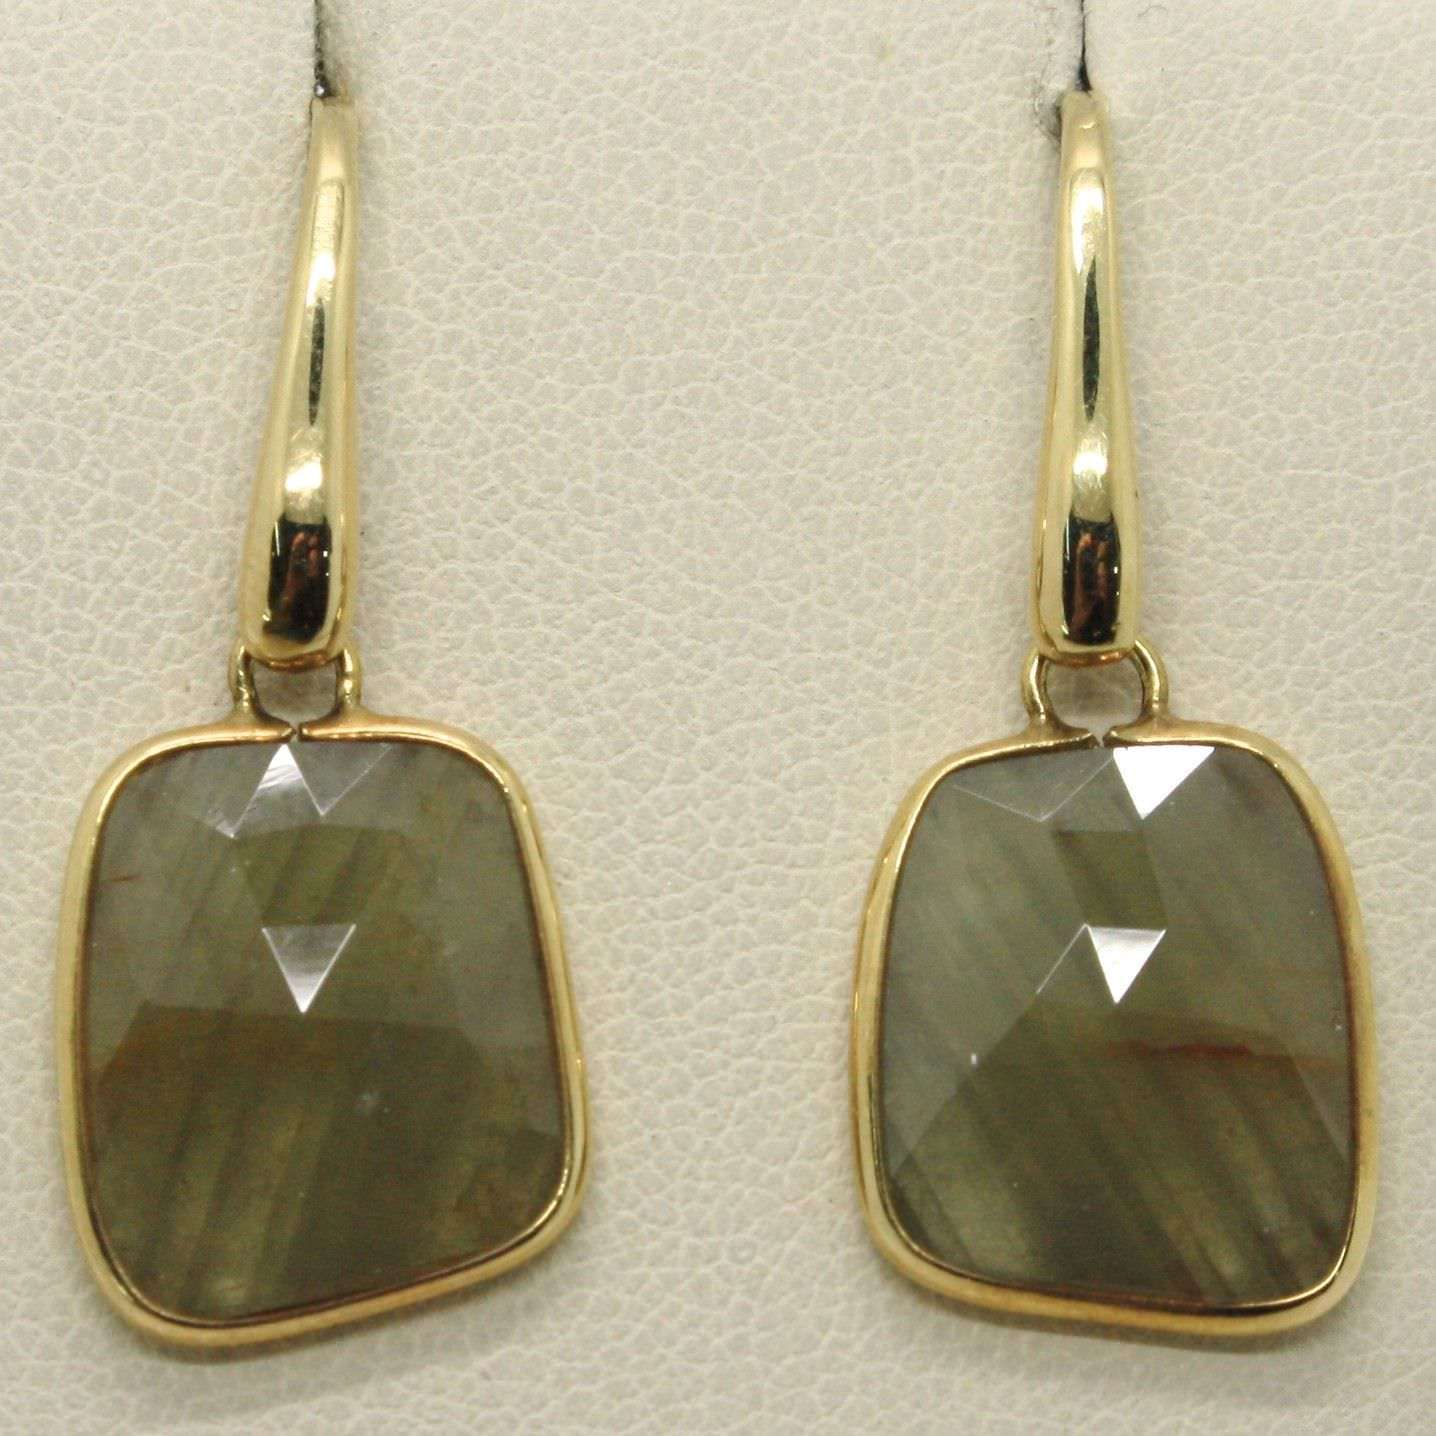 YELLOW GOLD EARRINGS 9K WITH SAPPHIRES GREEN BROWN MADE IN ITALY PIECE SINGLE